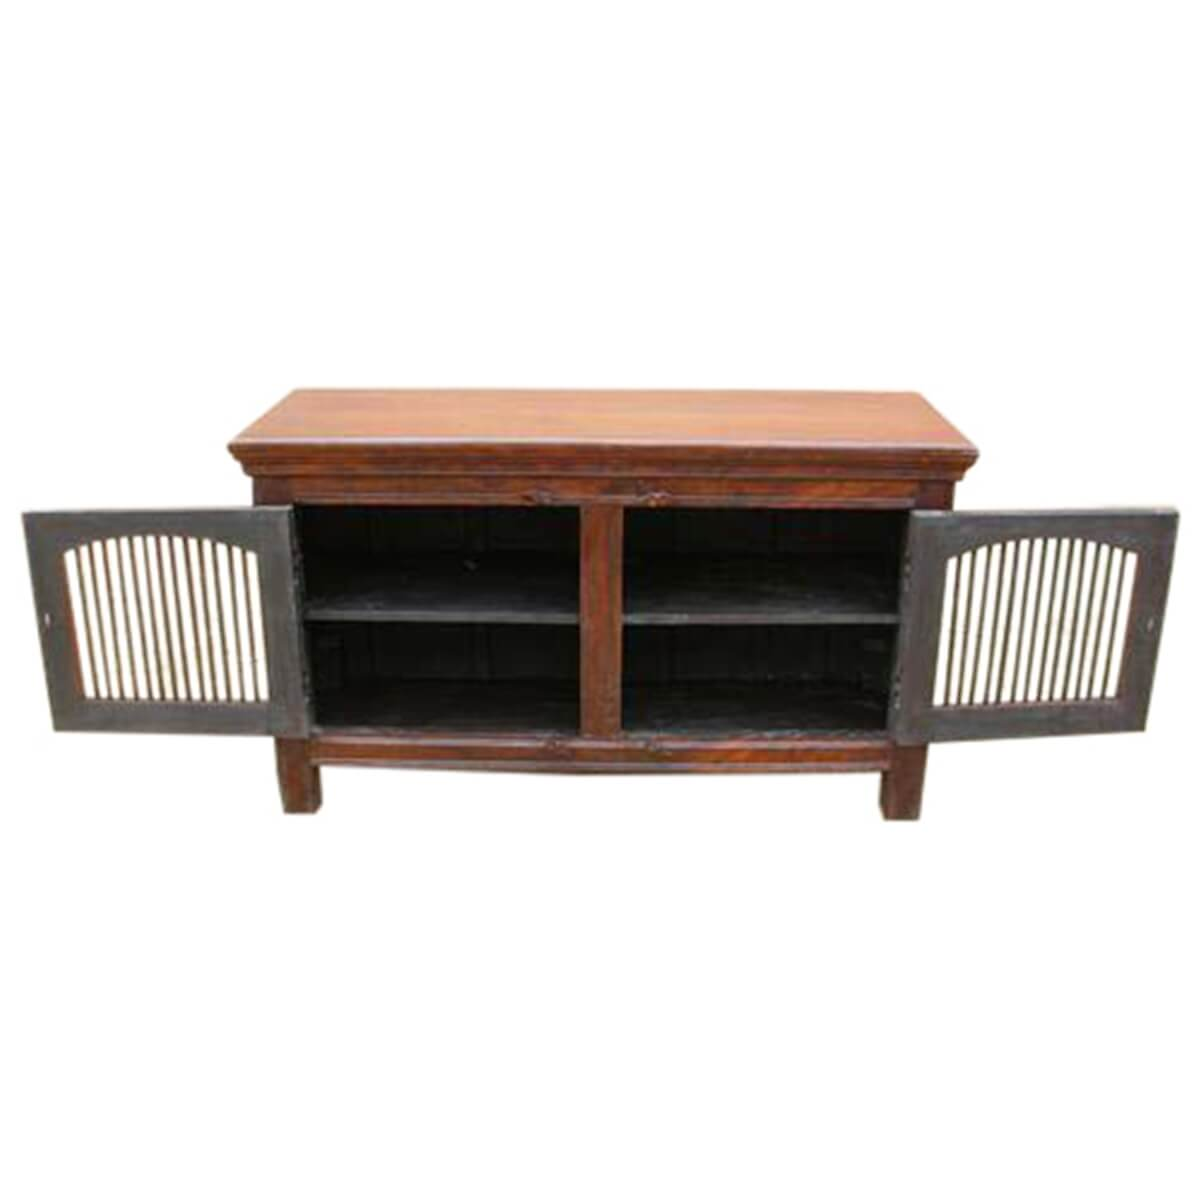 wade solid wood 2 wrought iron door buffet cabinet. Black Bedroom Furniture Sets. Home Design Ideas